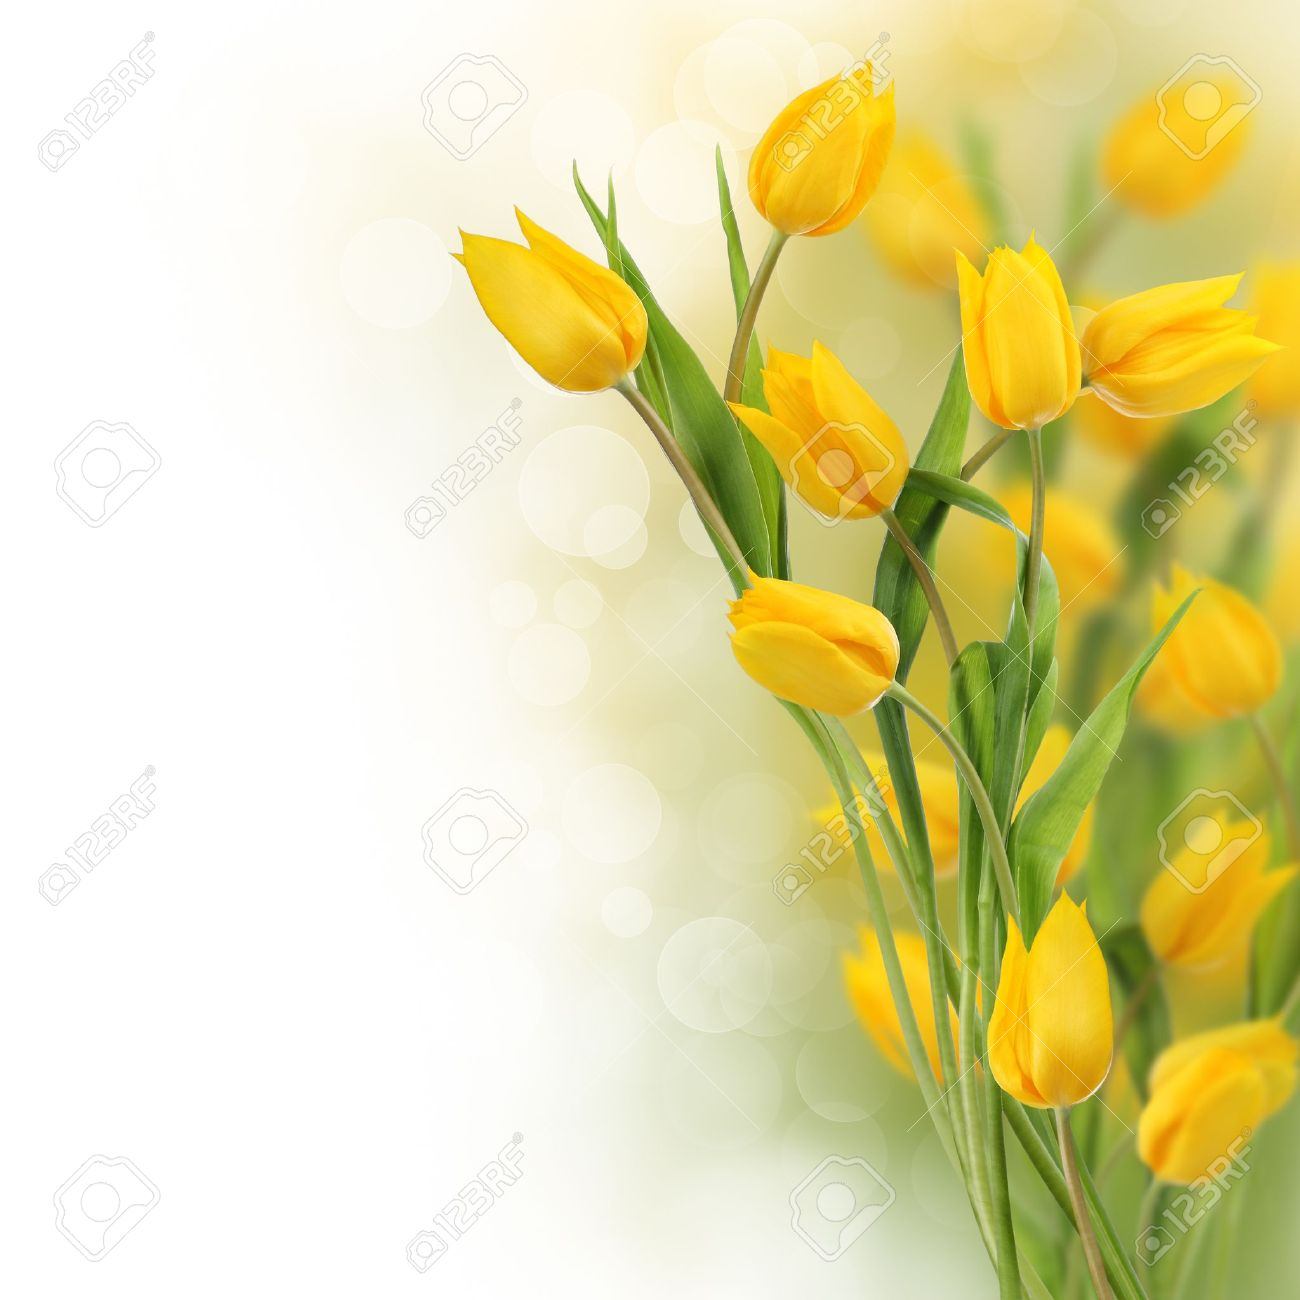 tulip flowers border with copy space stock photo, picture and, Beautiful flower